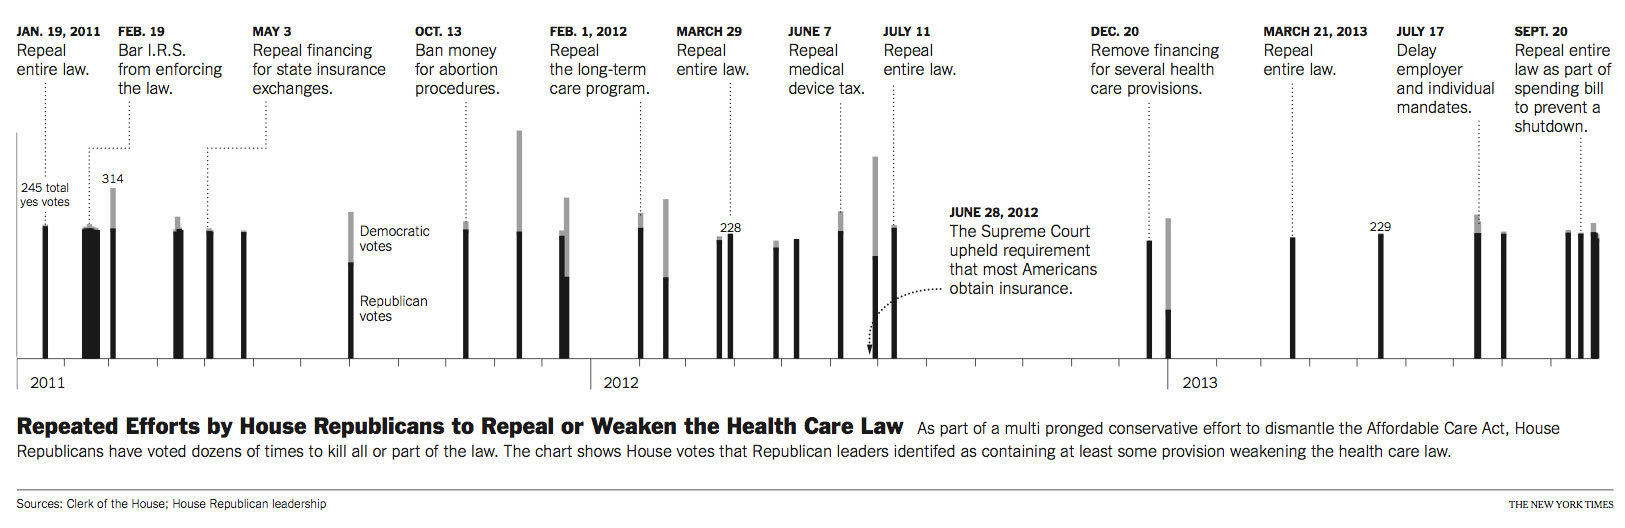 House Republican Efforts to Repeal or Weaken the Health